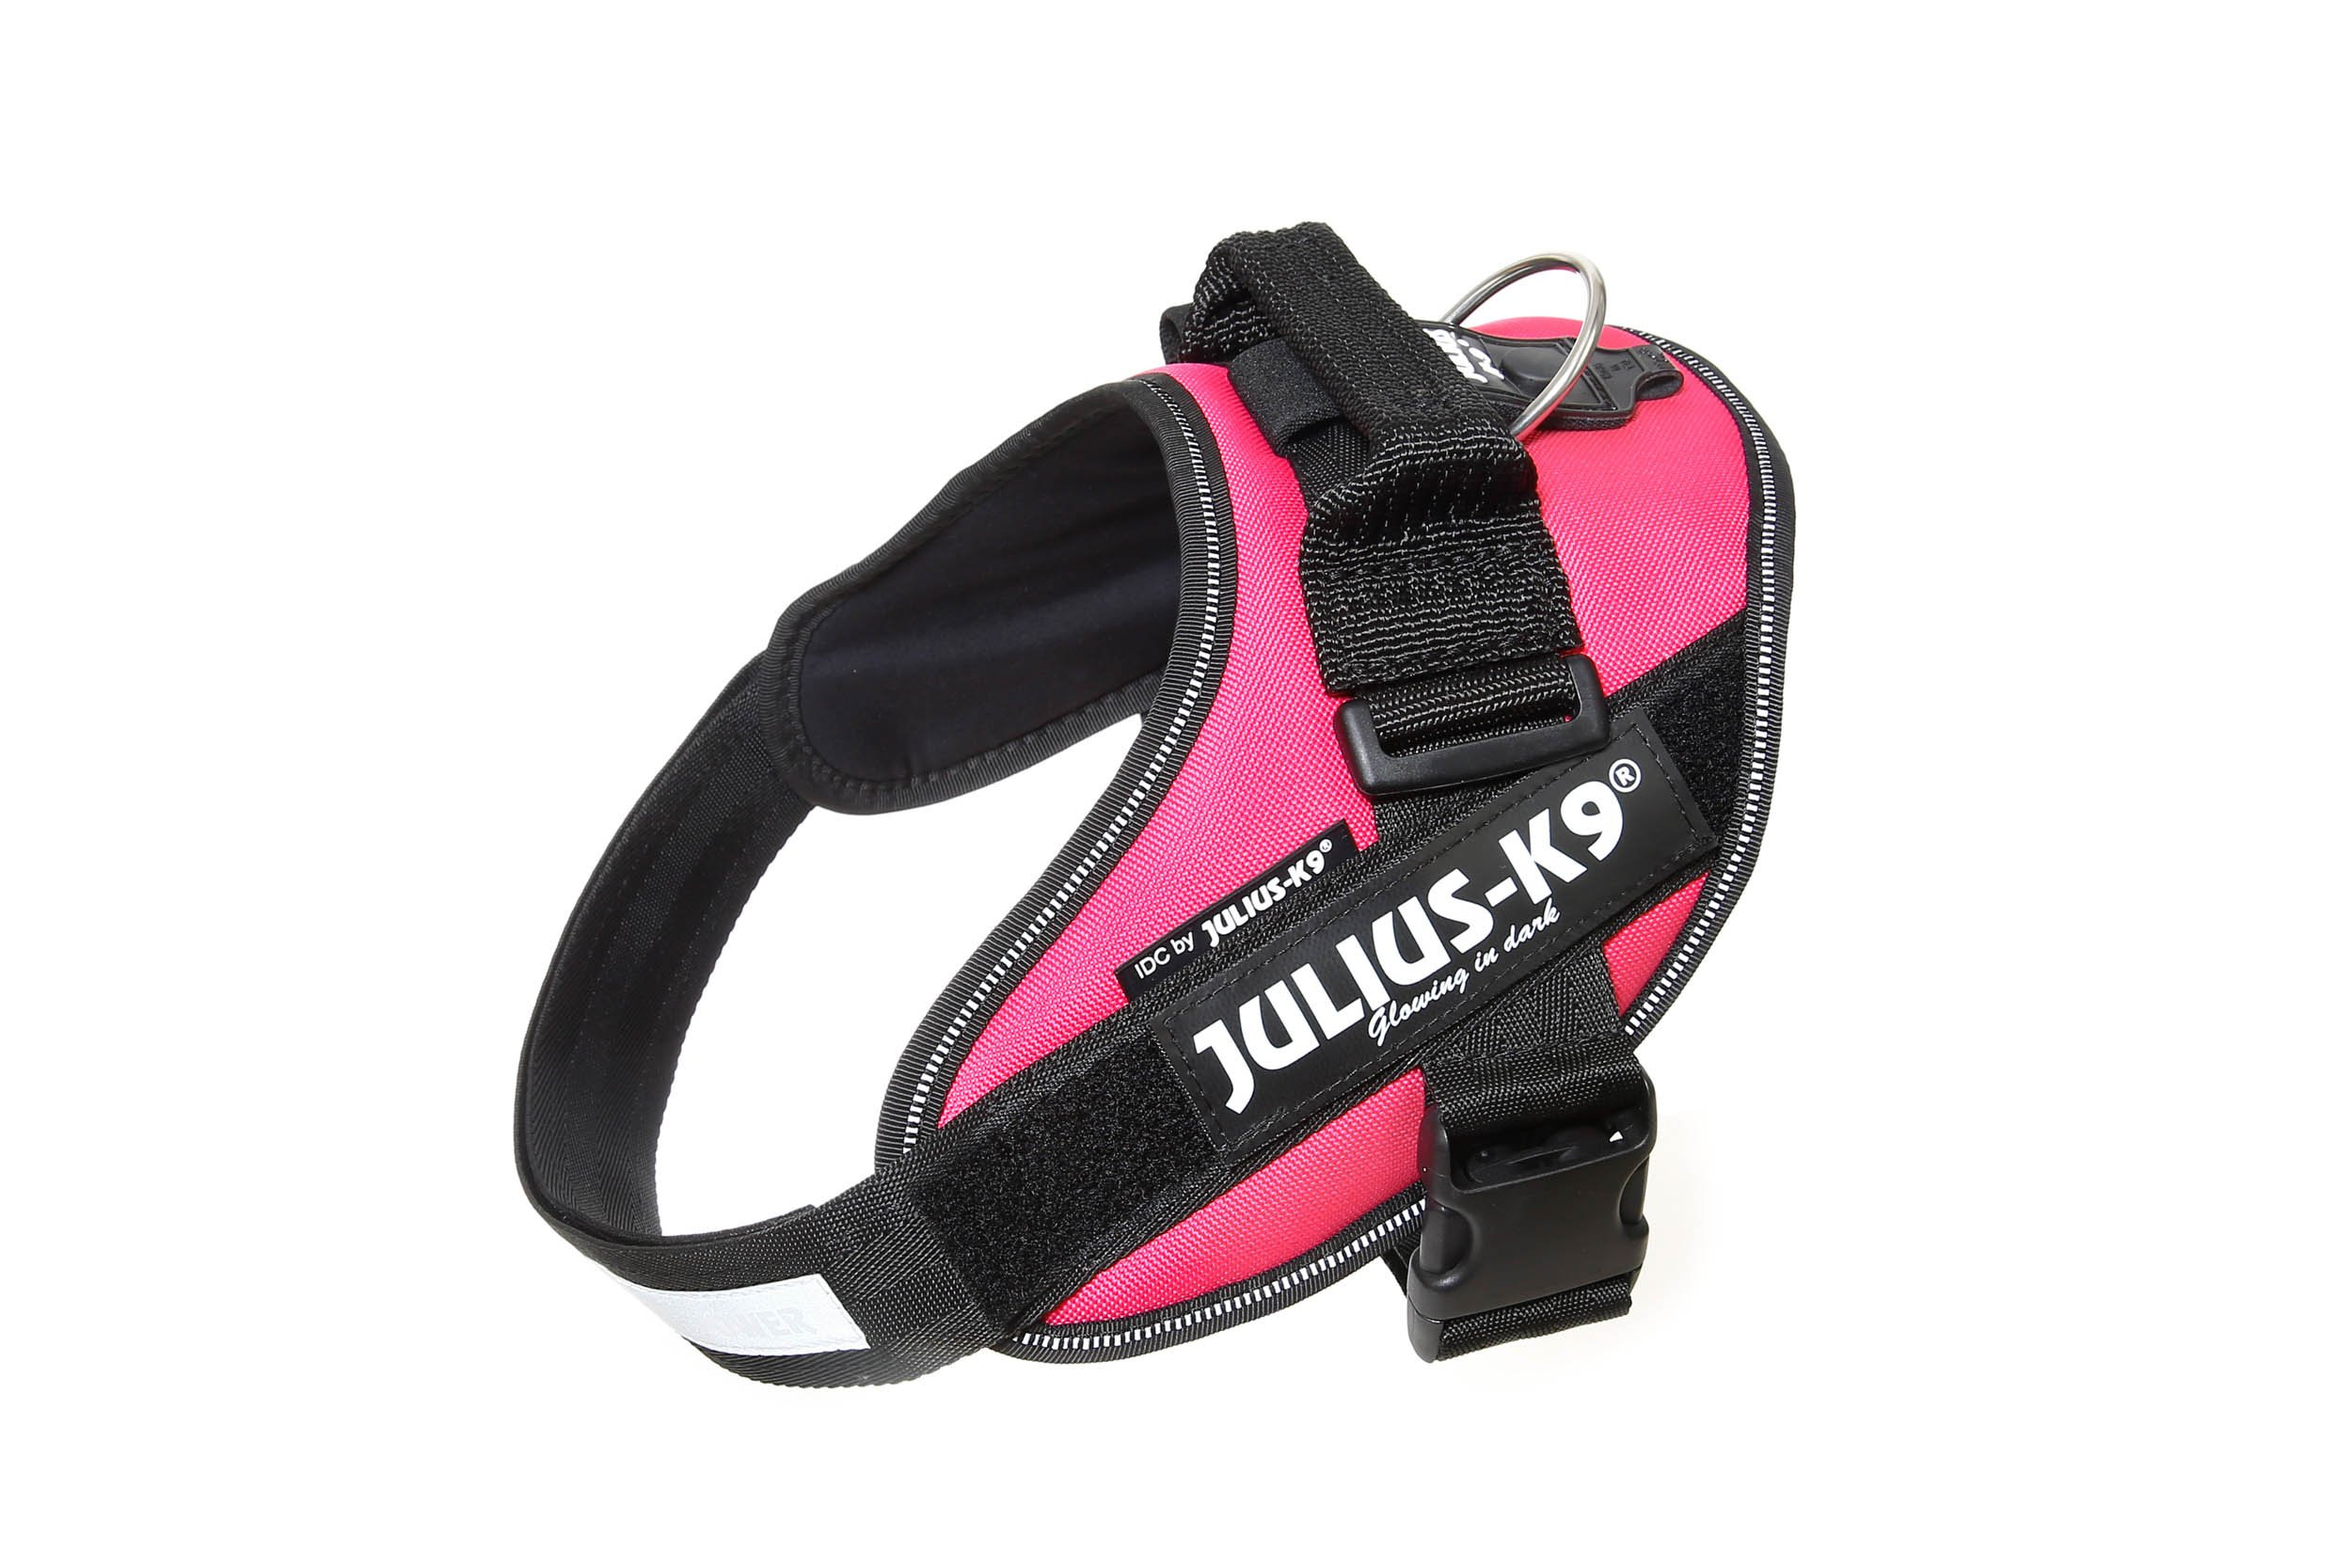 Julius-K9 16IDC-DPN-0 IDC Power Harness, Size: 0 (58-76cm/23-30), Dark Pink by Julius-K9 (Image #1)